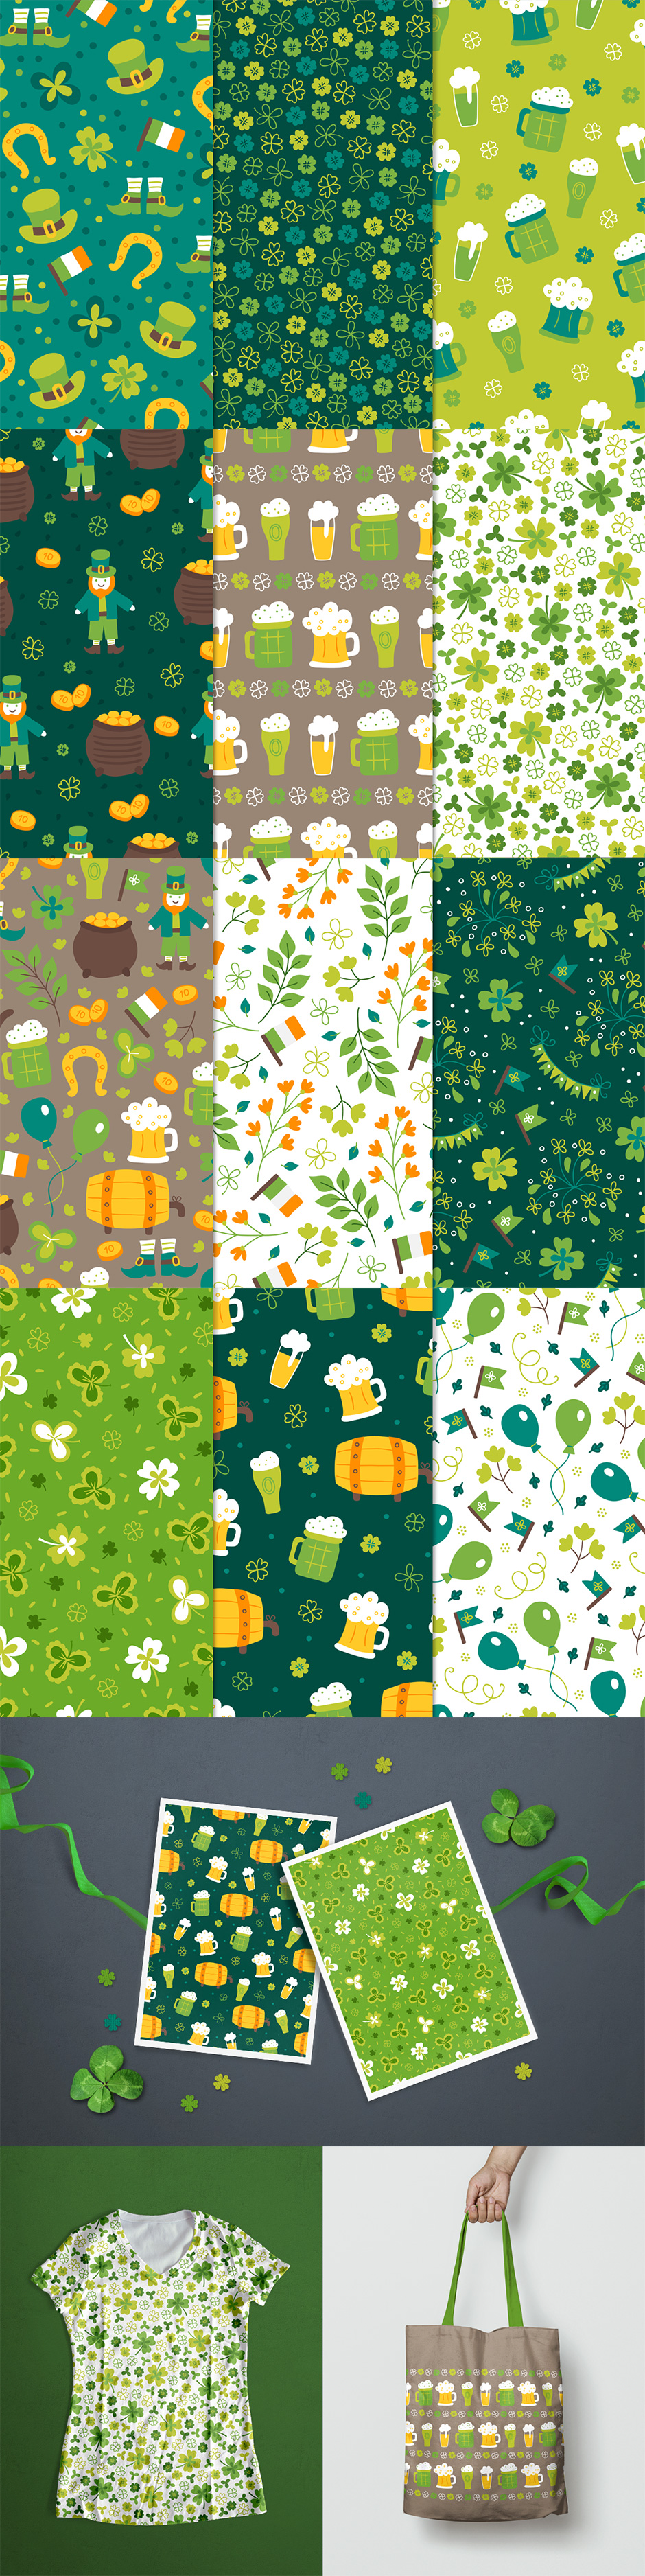 12 St Patricks Day Patterns